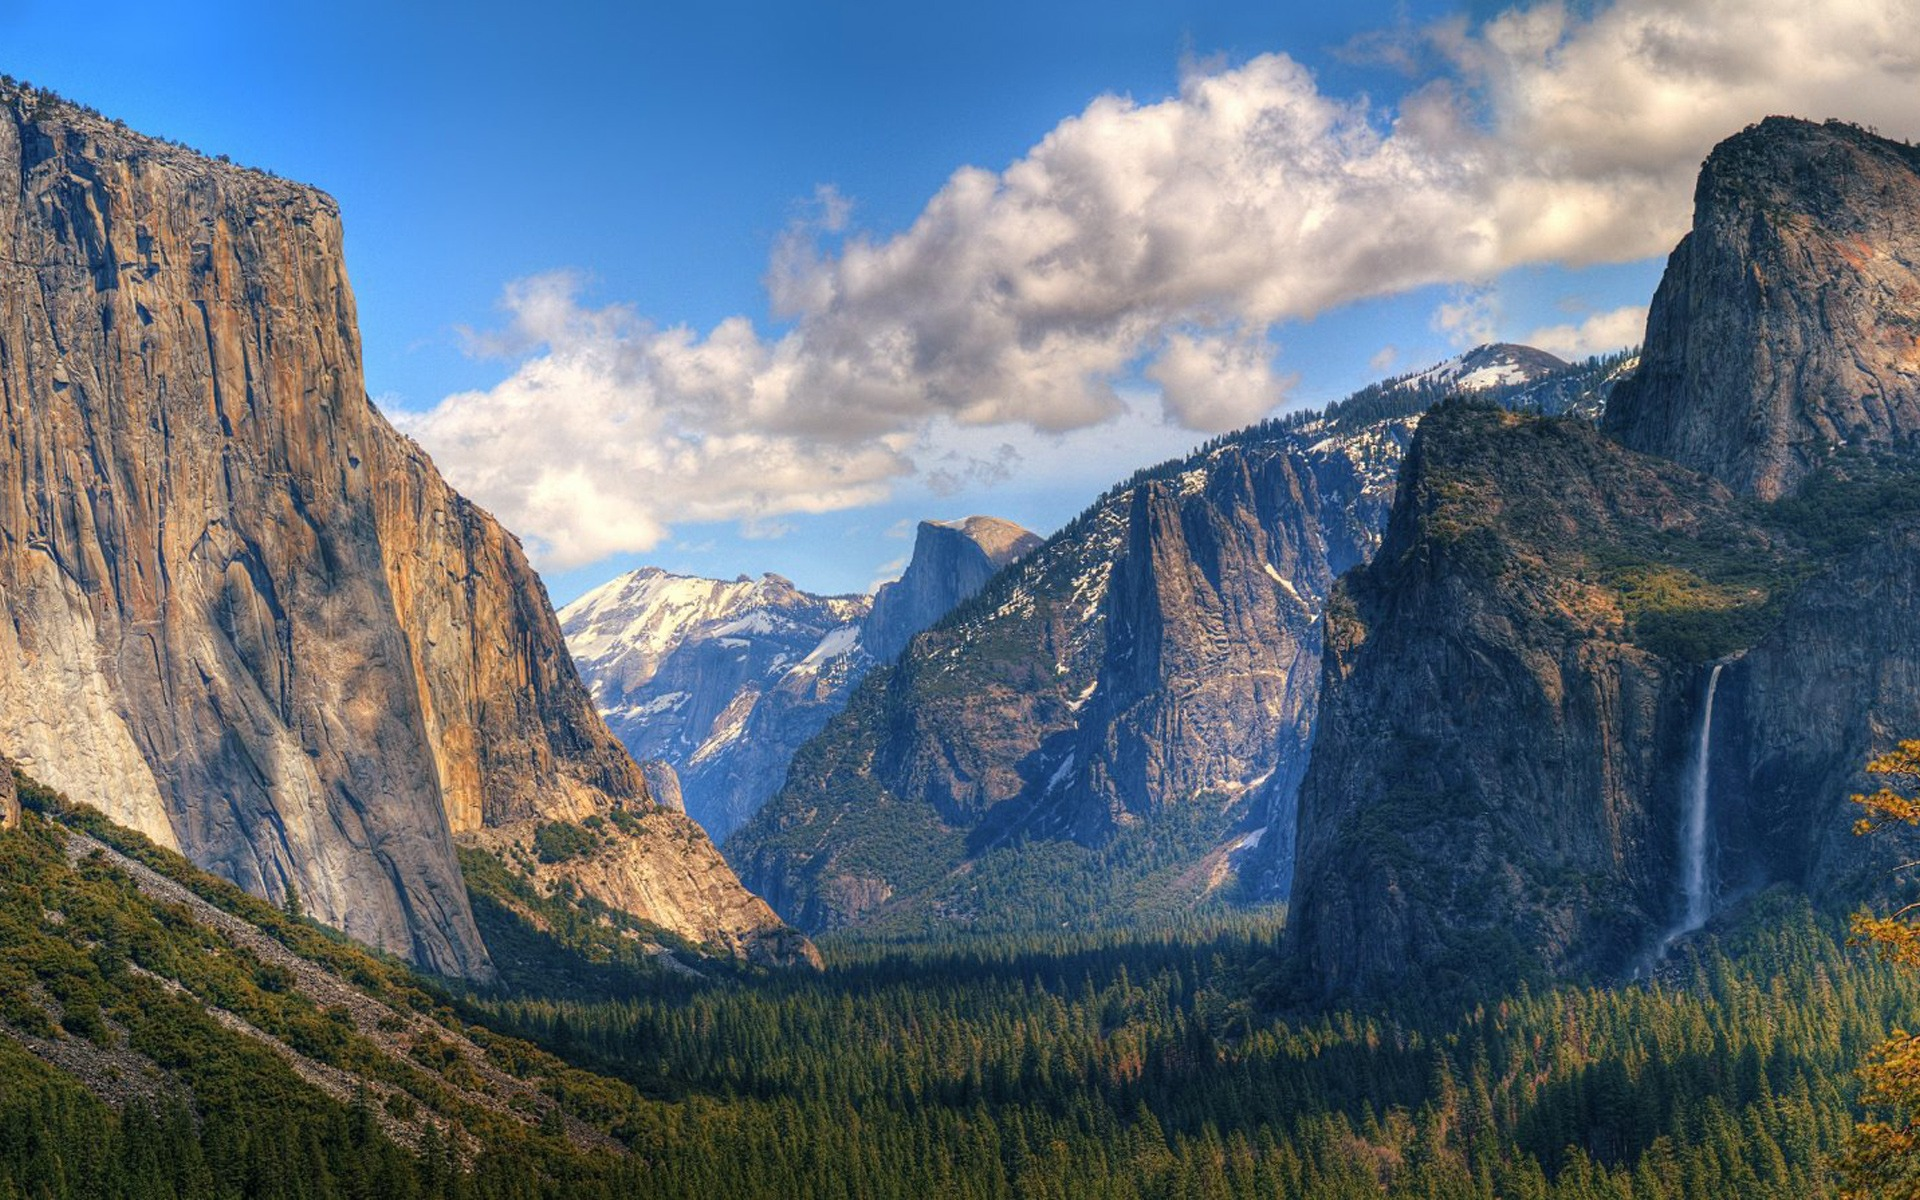 Yosemite Valley Landscape Nature Wallpaper #95123 - Resolution 1920x1200 px